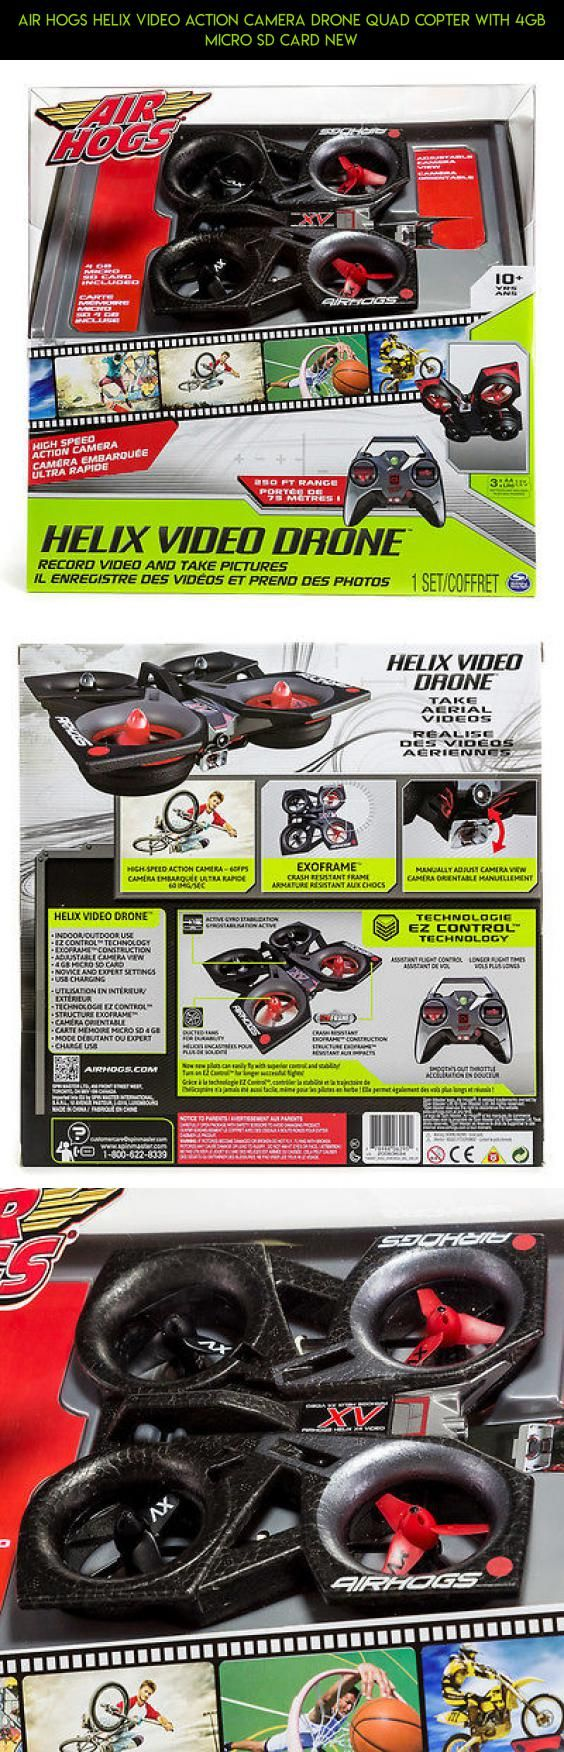 Air Hogs Helix Video Action Camera Drone Quad Copter with 4GB Micro SD Card NEW #drone #racing #air #tech #fpv #products #parts #hogs #camera #camera #gadgets #with #plans #kit #drone #technology #shopping